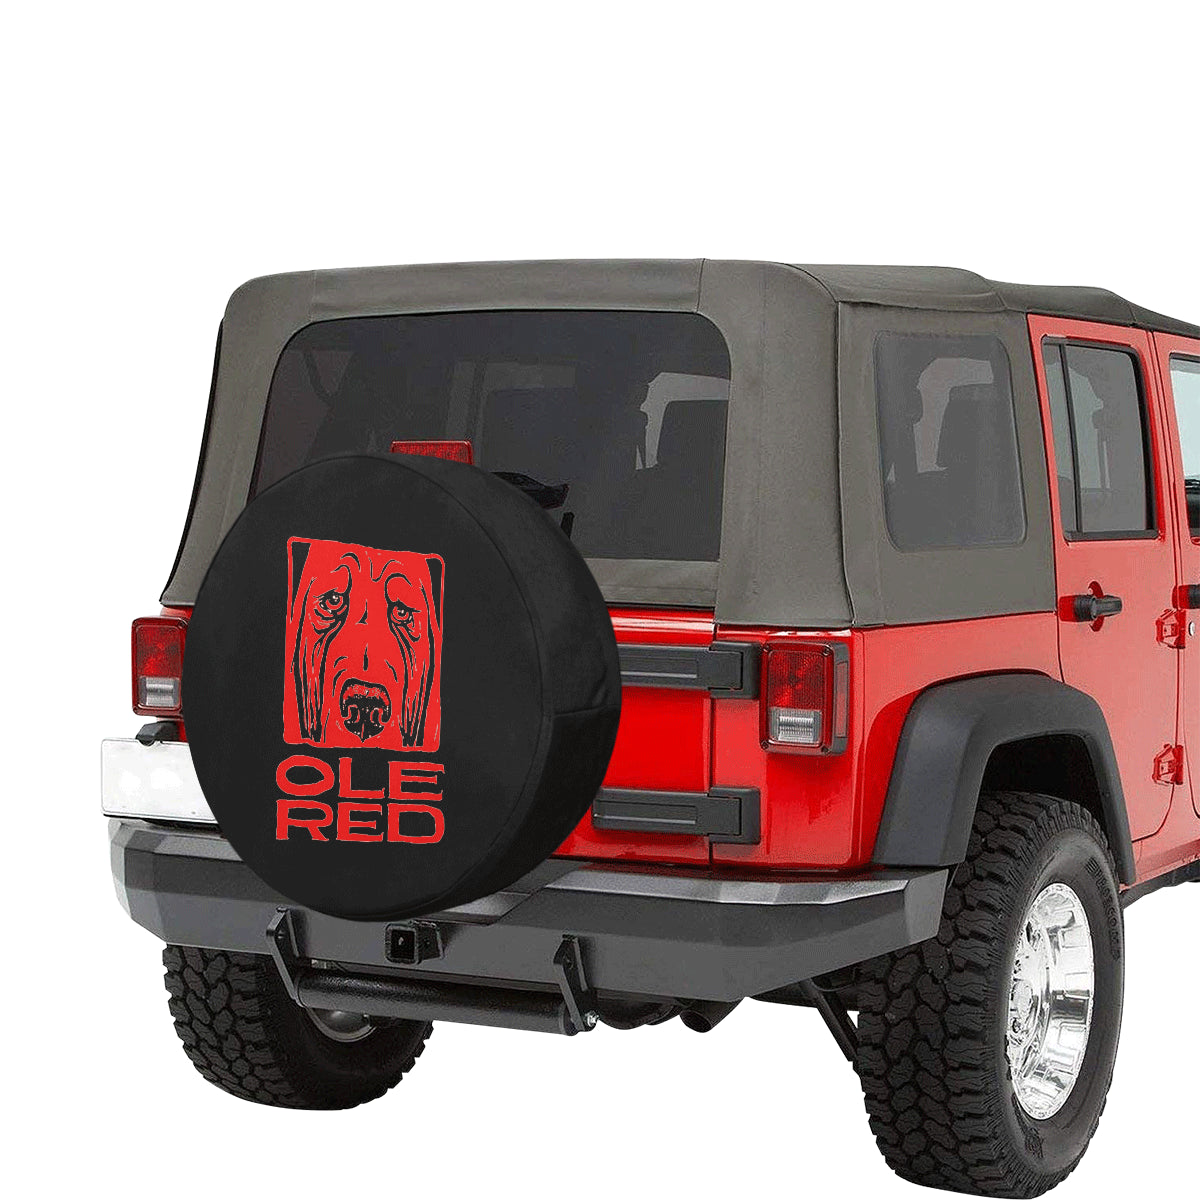 Ole red dog jeep 32 Inch Spare Tire Cover.